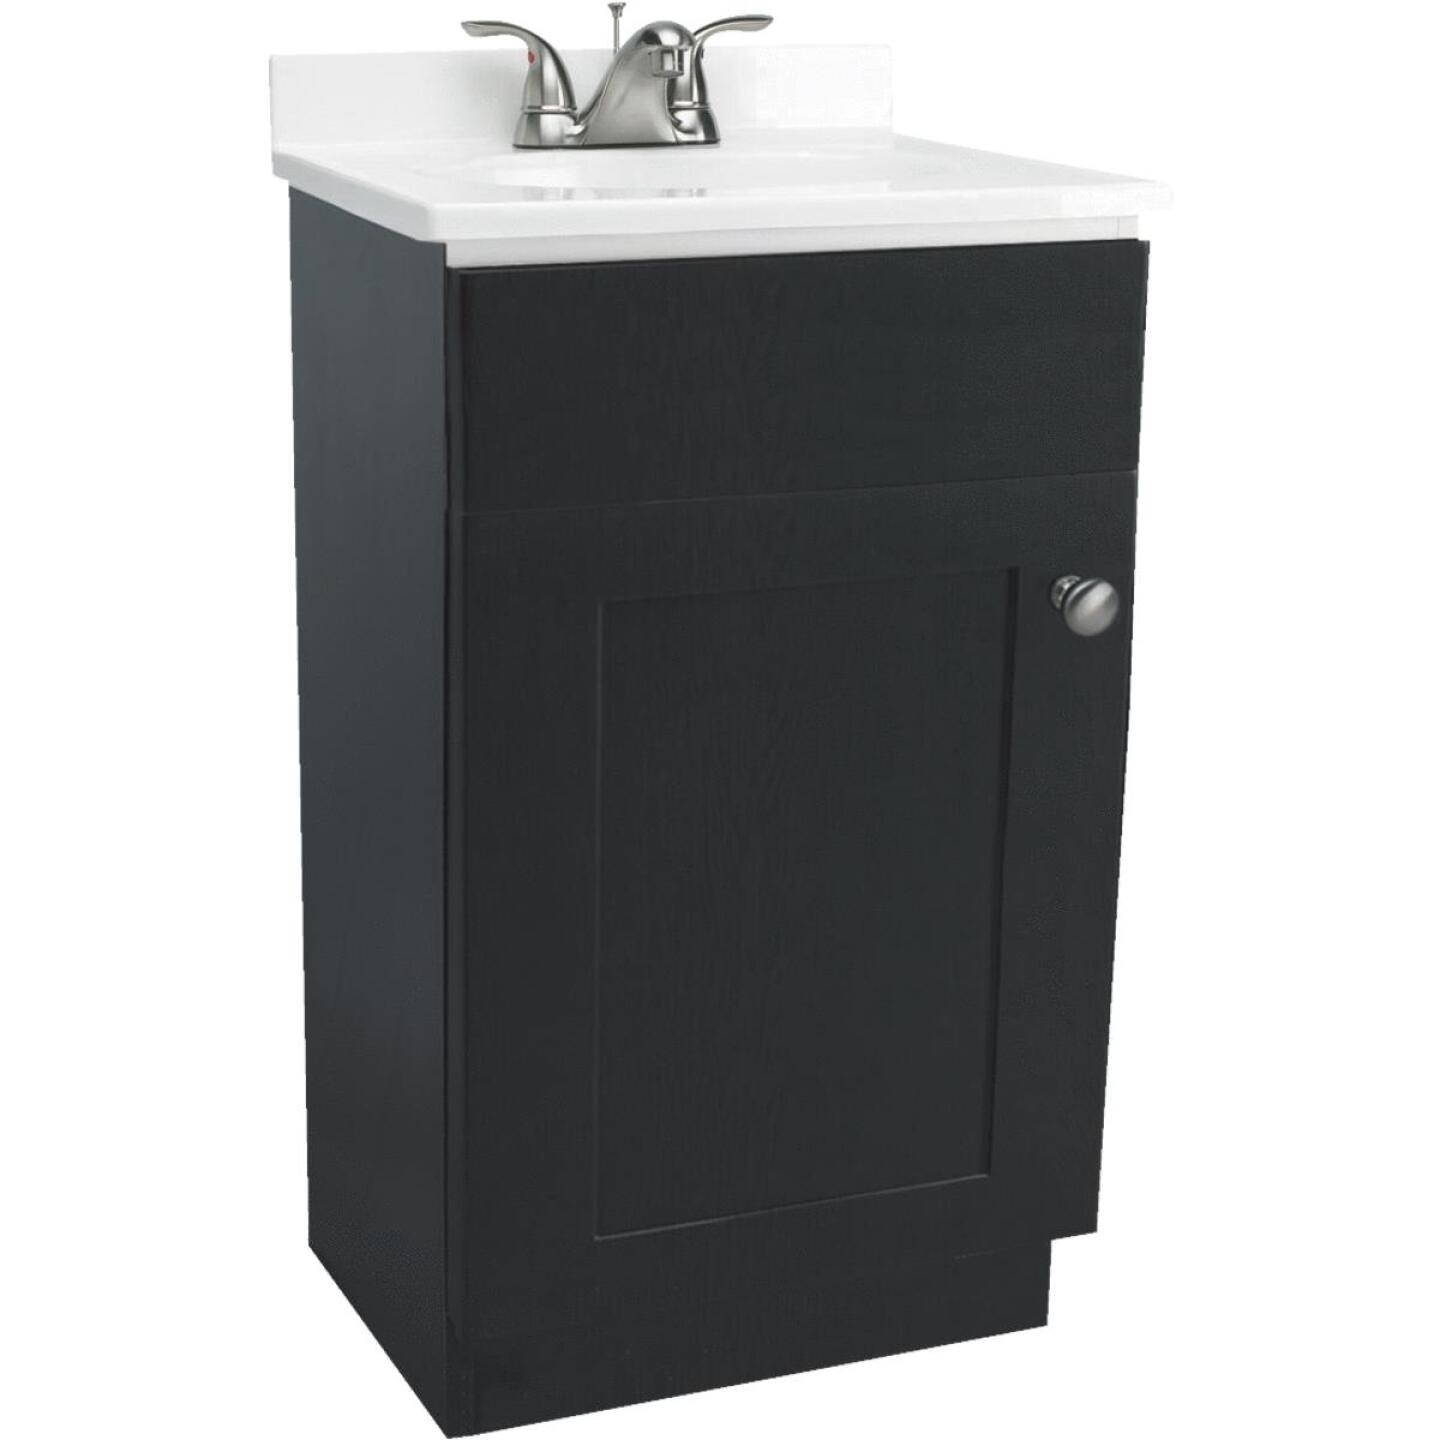 Design House Espresso 18 In. W x 31-1/2 In. H x 16 In. D Combo Vanity with Cultured Marble Top Image 1